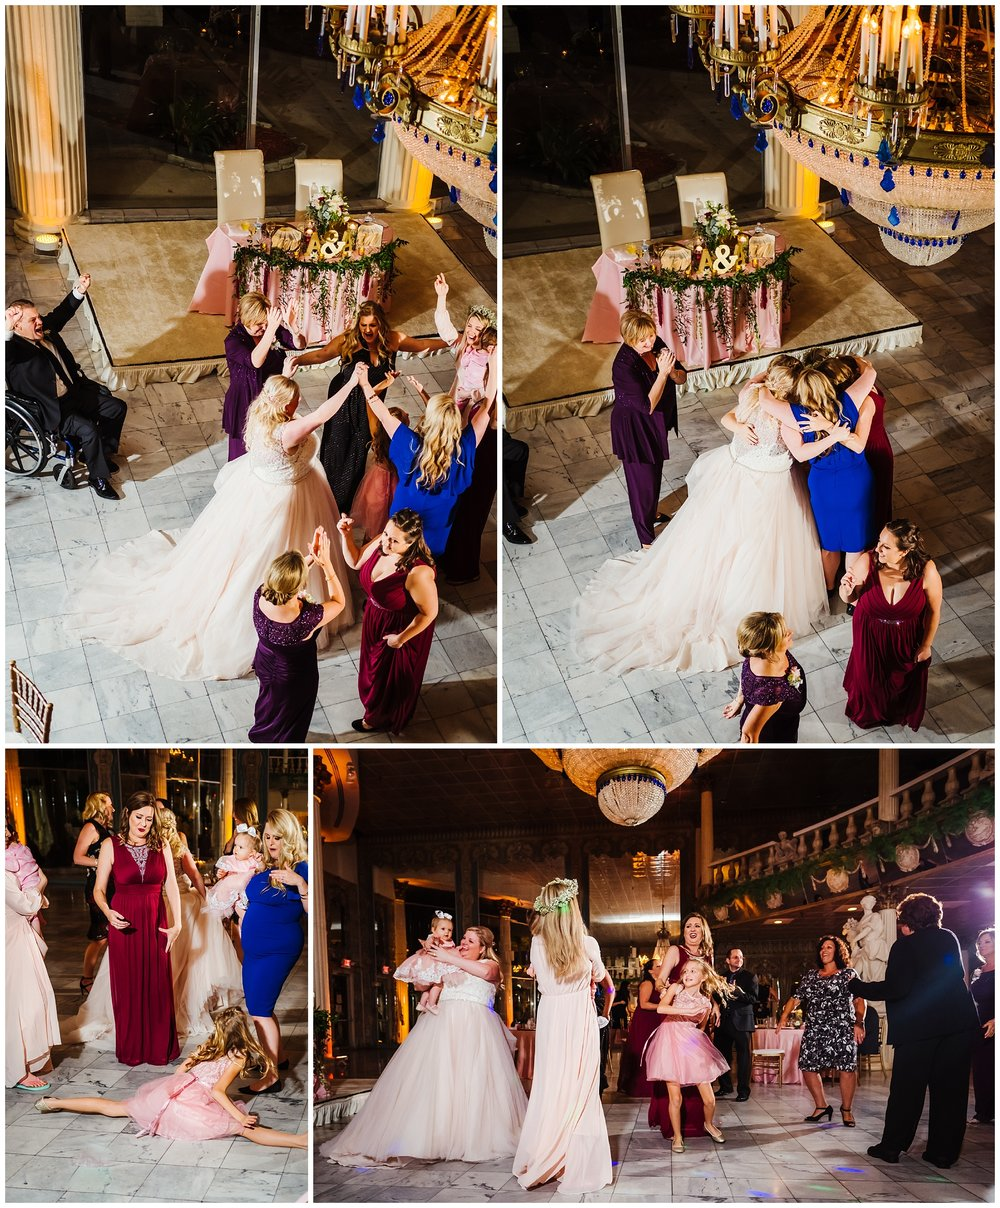 tampa-wedding-photographer-kapok-special-events-center-hayley-paige-gress-blush-gold-disney_0066.jpg